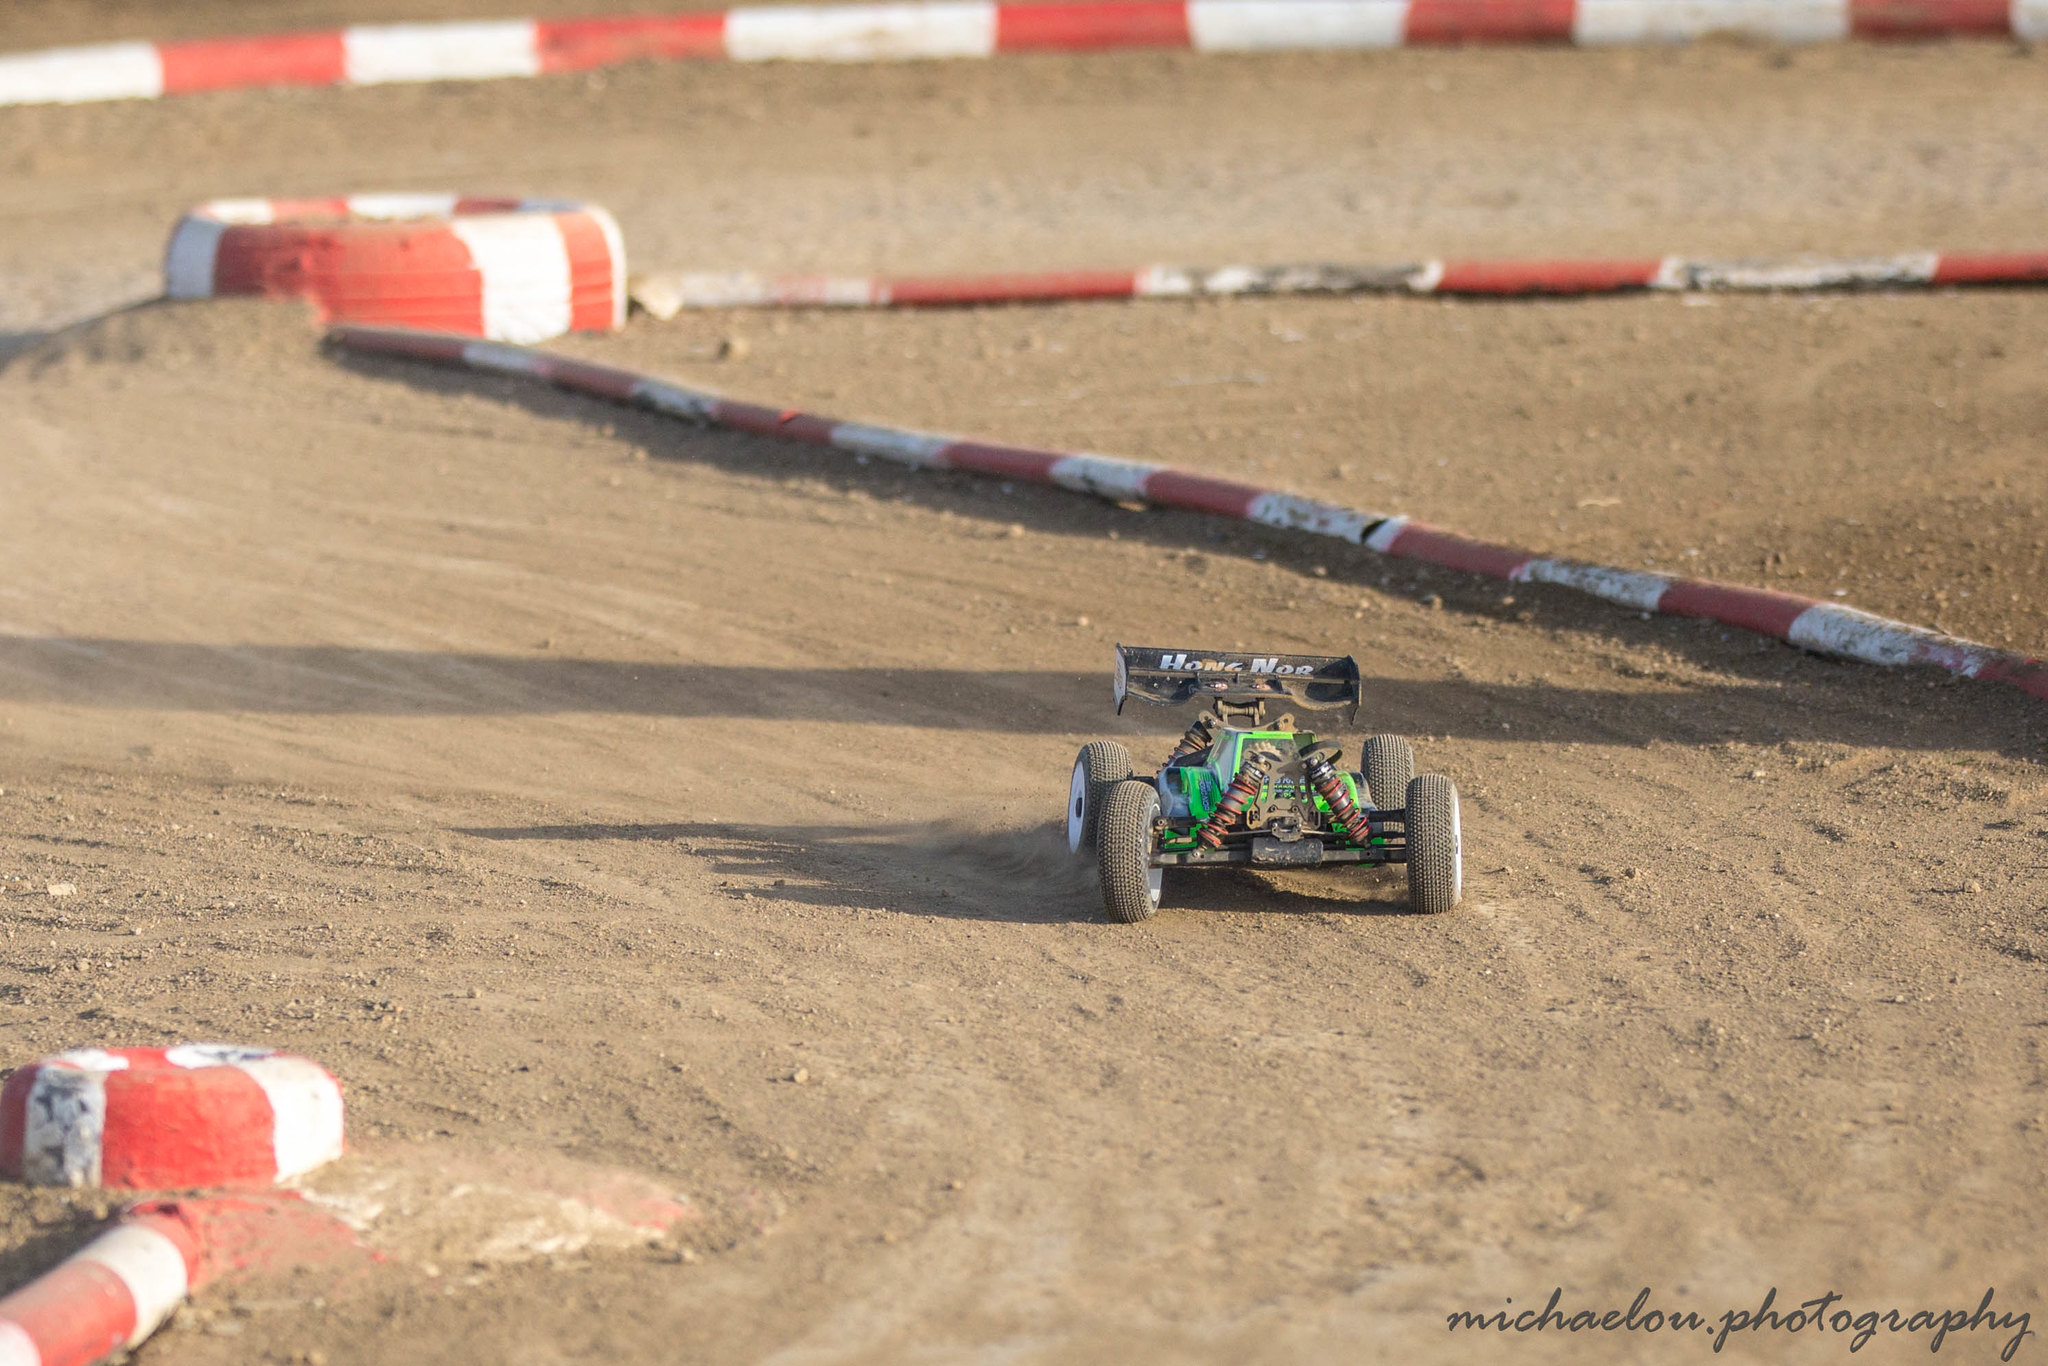 Rc Car Racing To The Pits Michaelou Photography By Andreas Michaelou